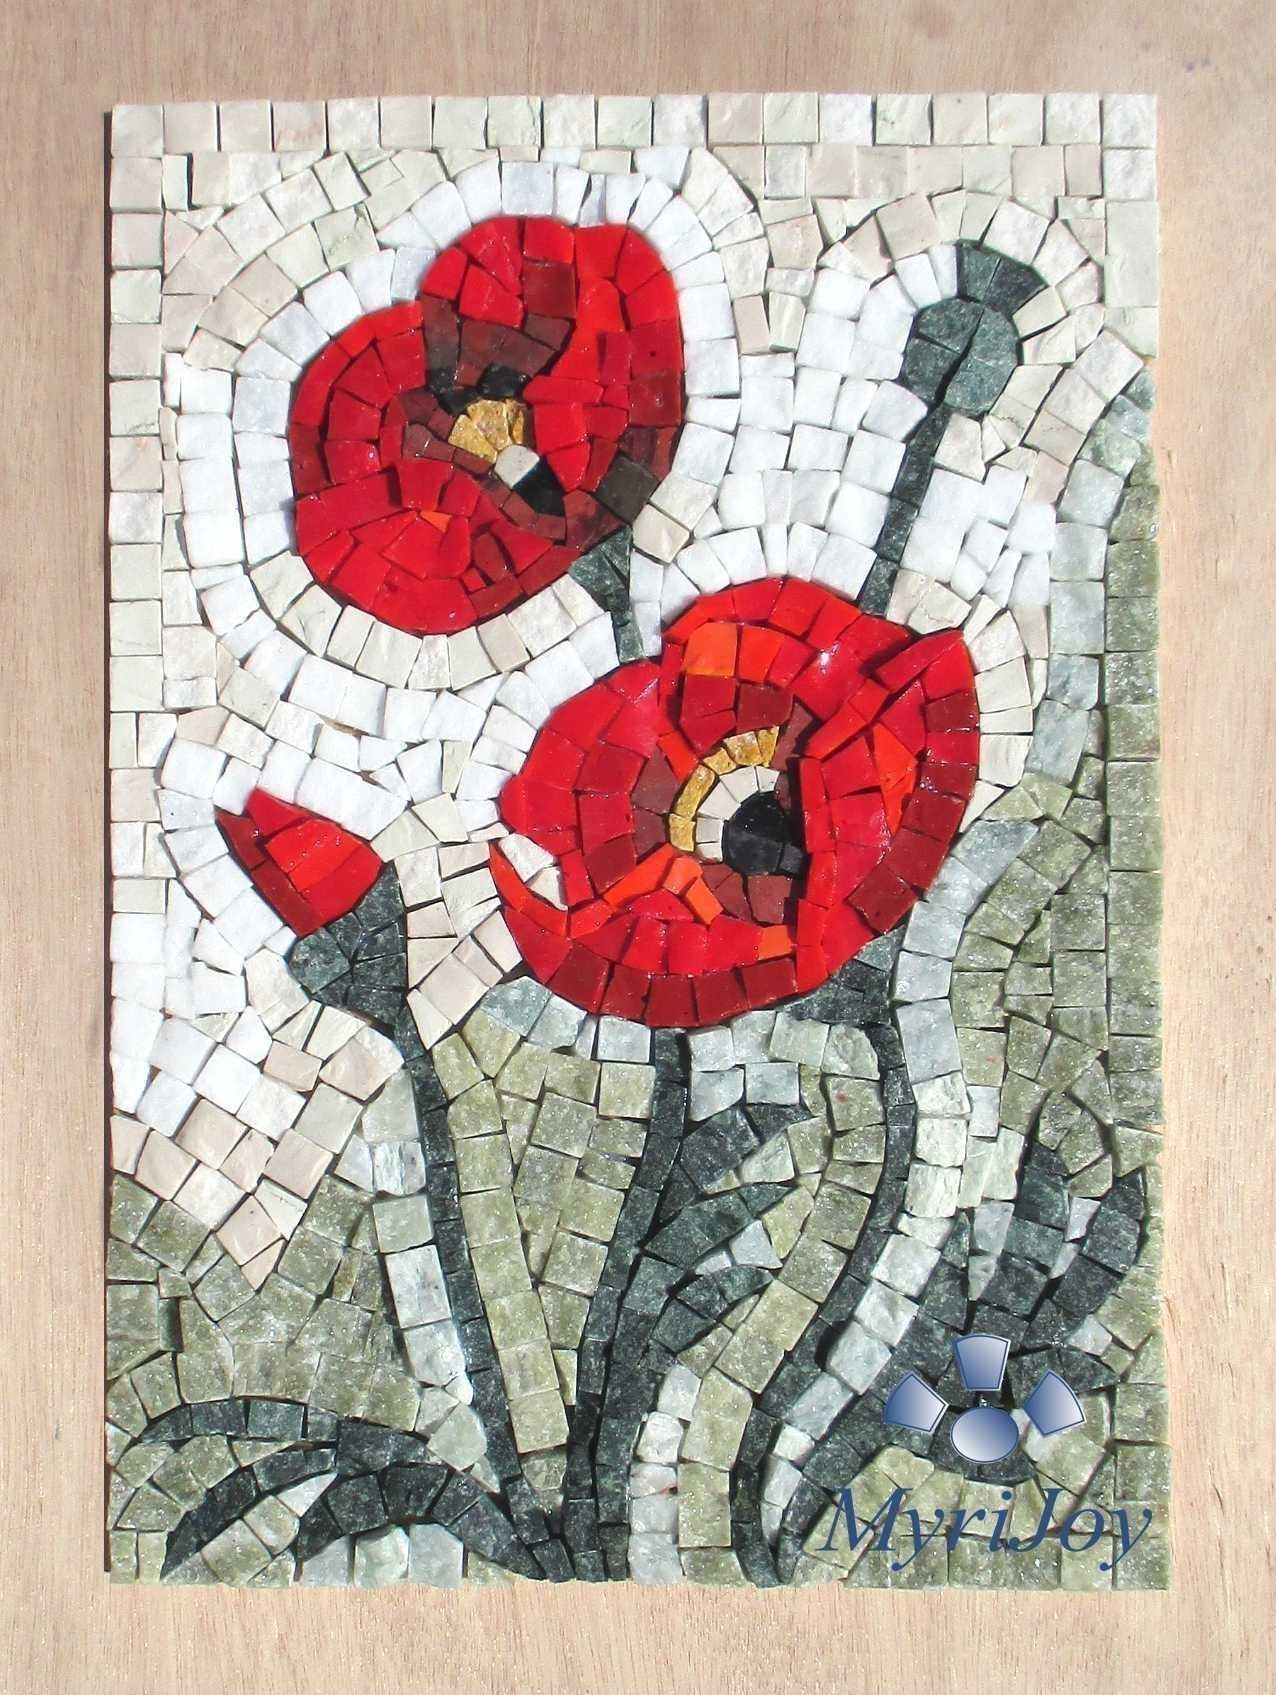 MOSAIC ART KIT DIY WILDFLOWERS POPPIES 9''x12.5'' - Birthday/Wedding / Anniversary gift ideas - Mosaic wall art - Feng Shui success - Creative hobbies - Craft kits for adults